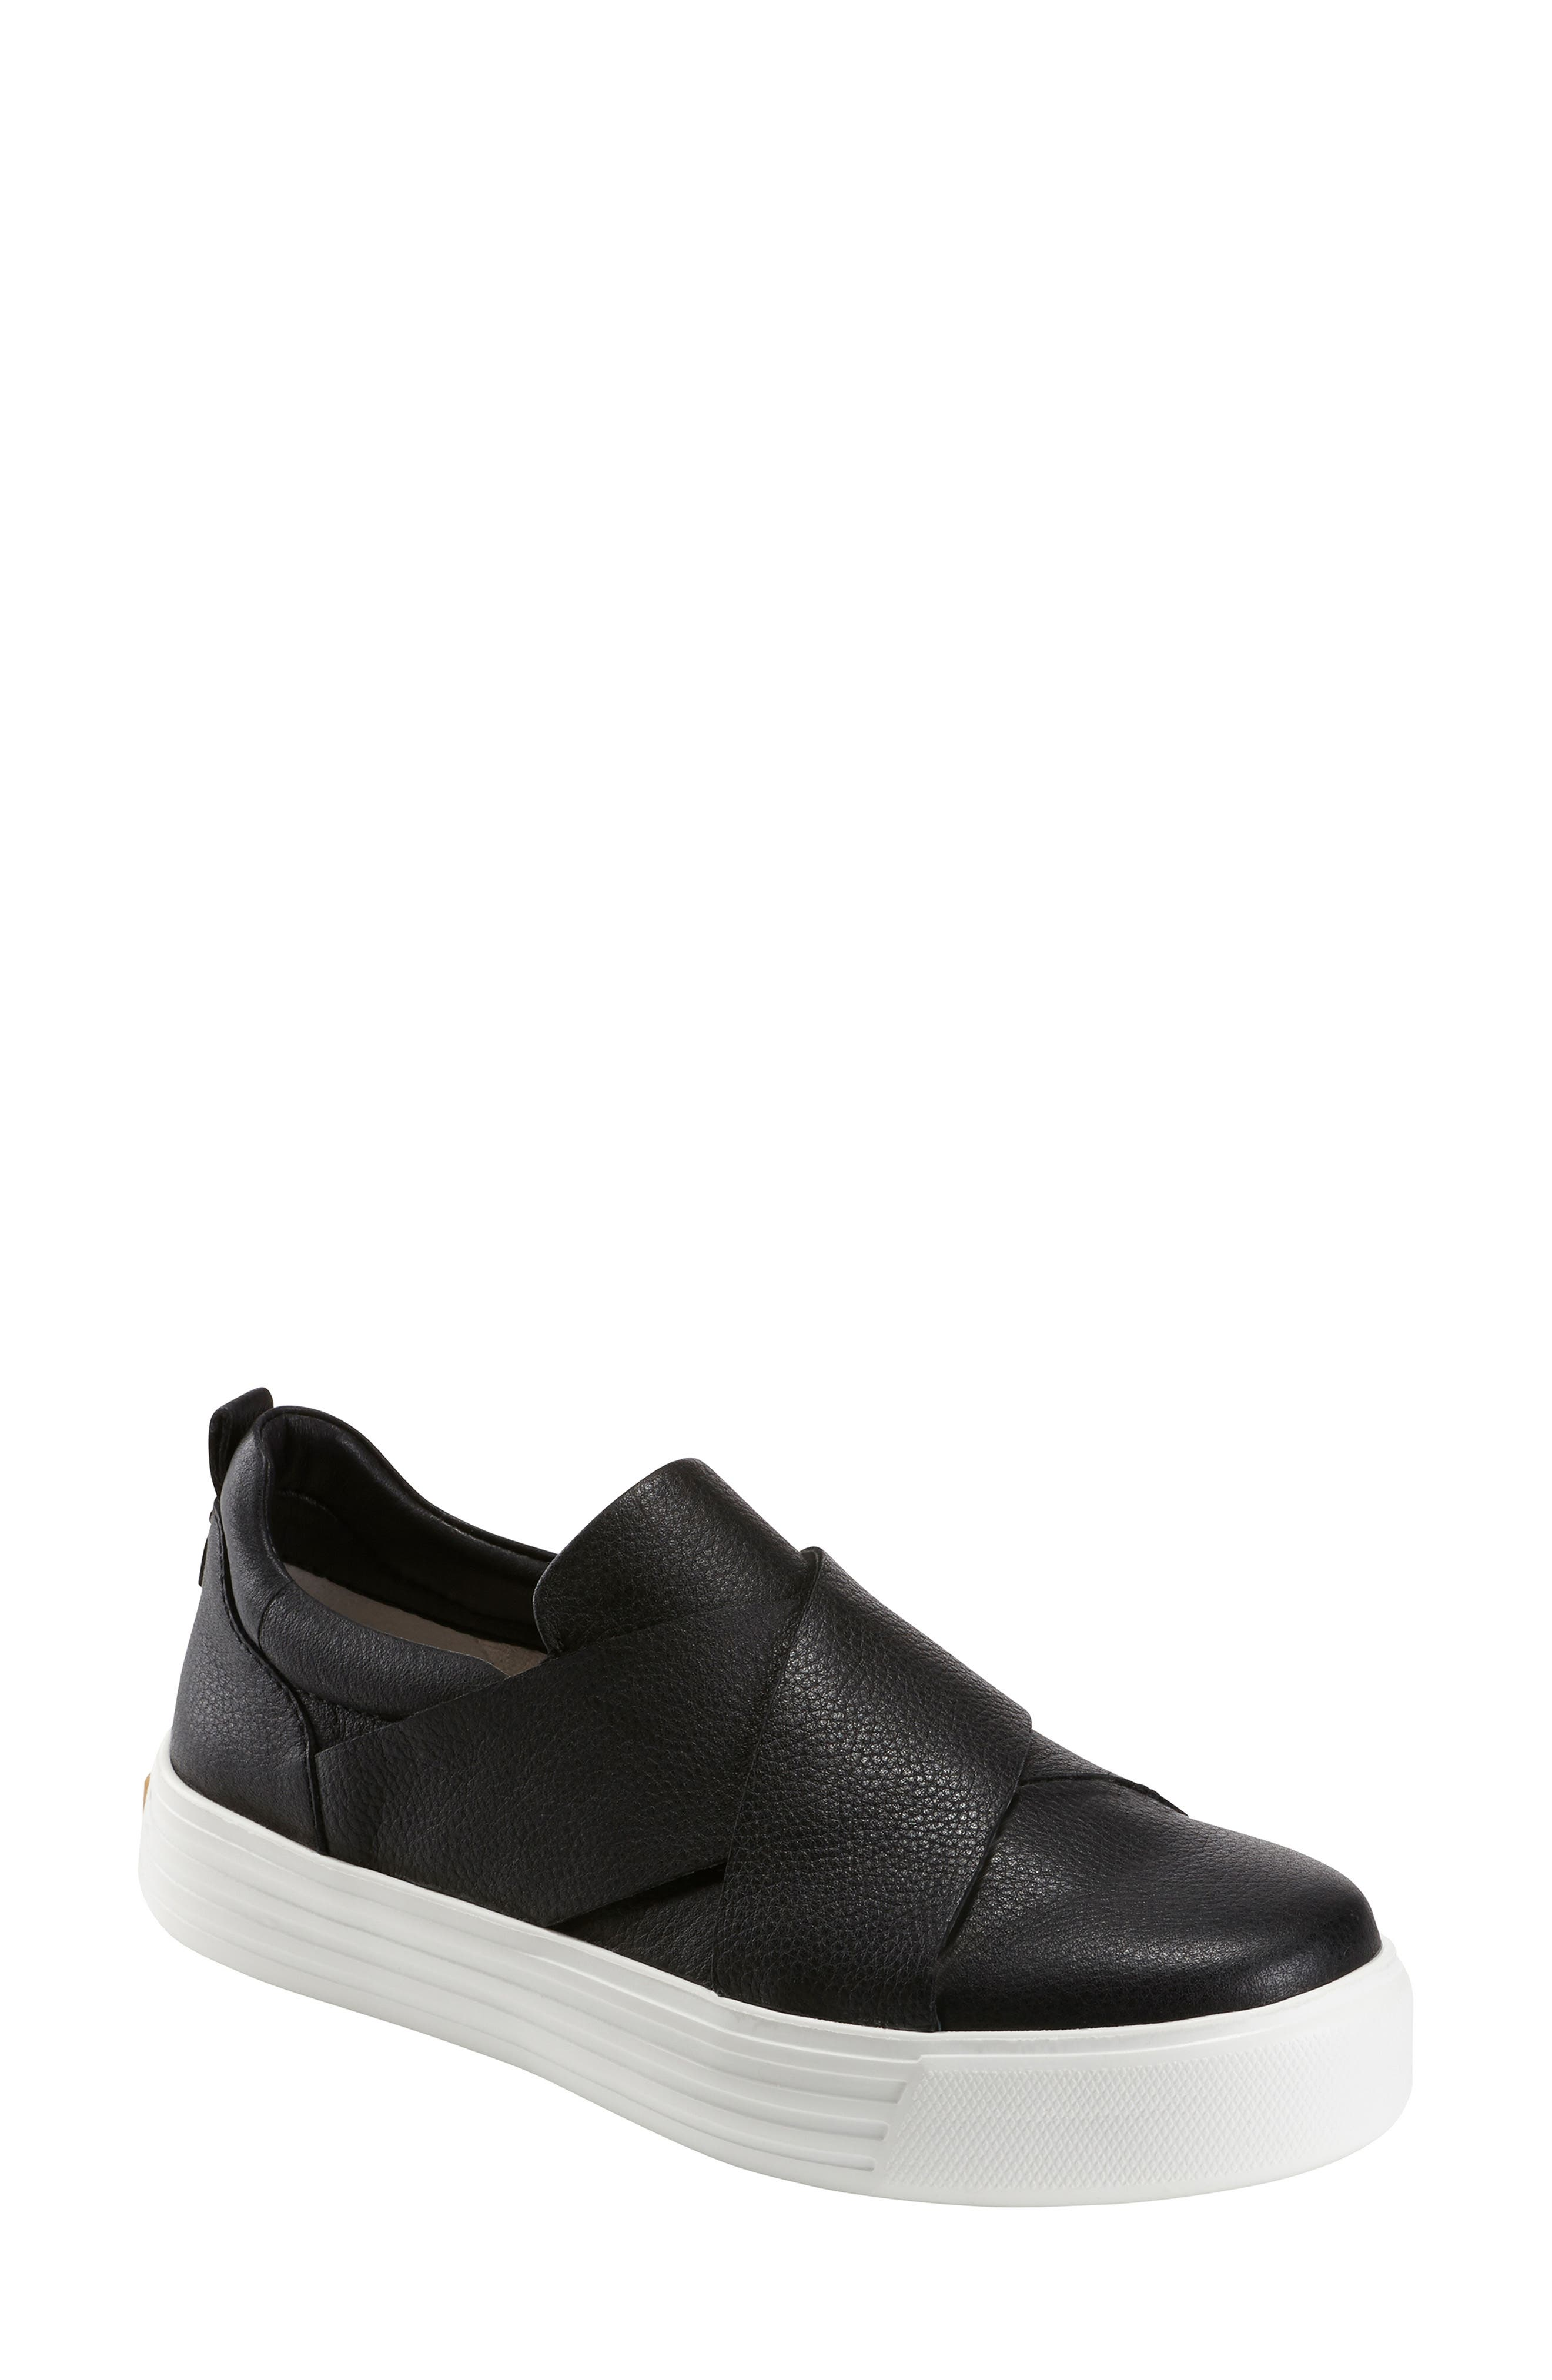 EARTH<SUP>®</SUP> Clary Sneaker, Main, color, BLACK LEATHER